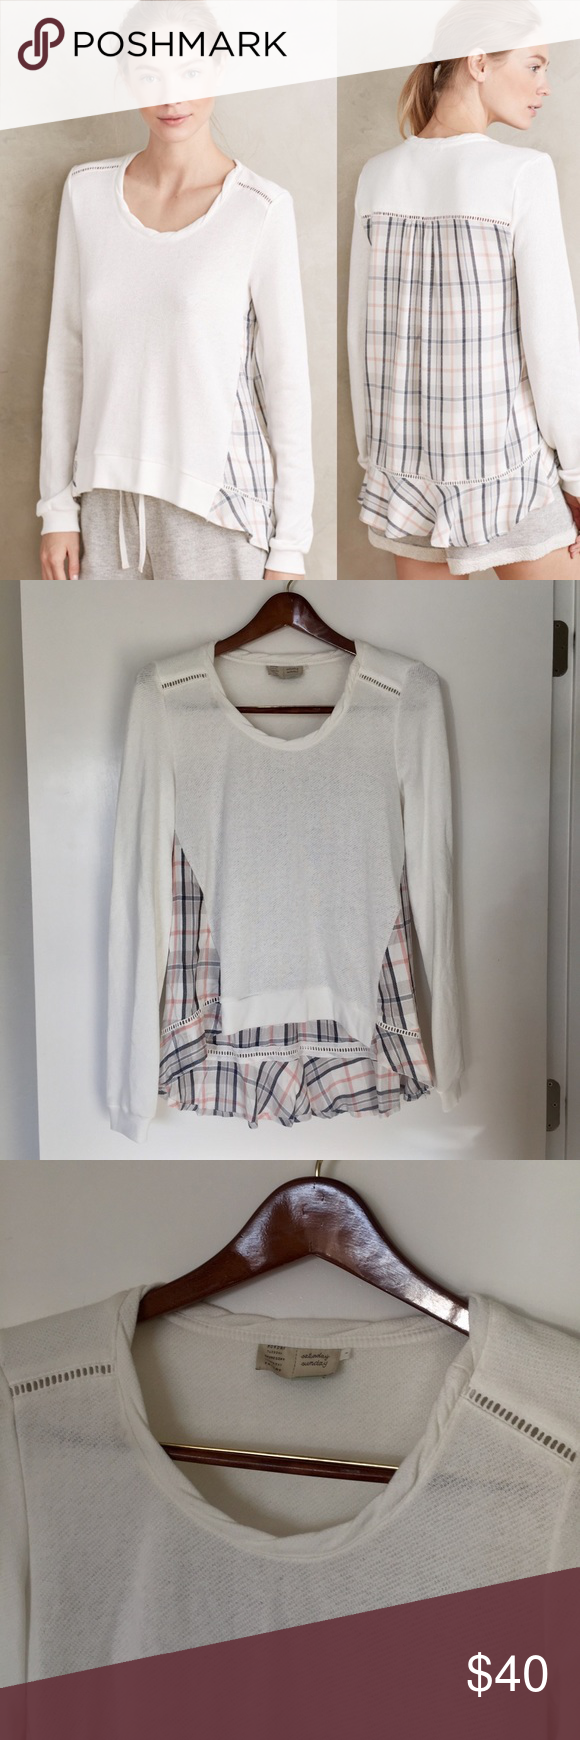 Anthropologie - Ruffled Plaid Pullover Anthropologie Ruffled Plaid Pullover by Saturday Sunday. Kinda like a sweater. Cute and comfy! Size small. Anthropologie Tops